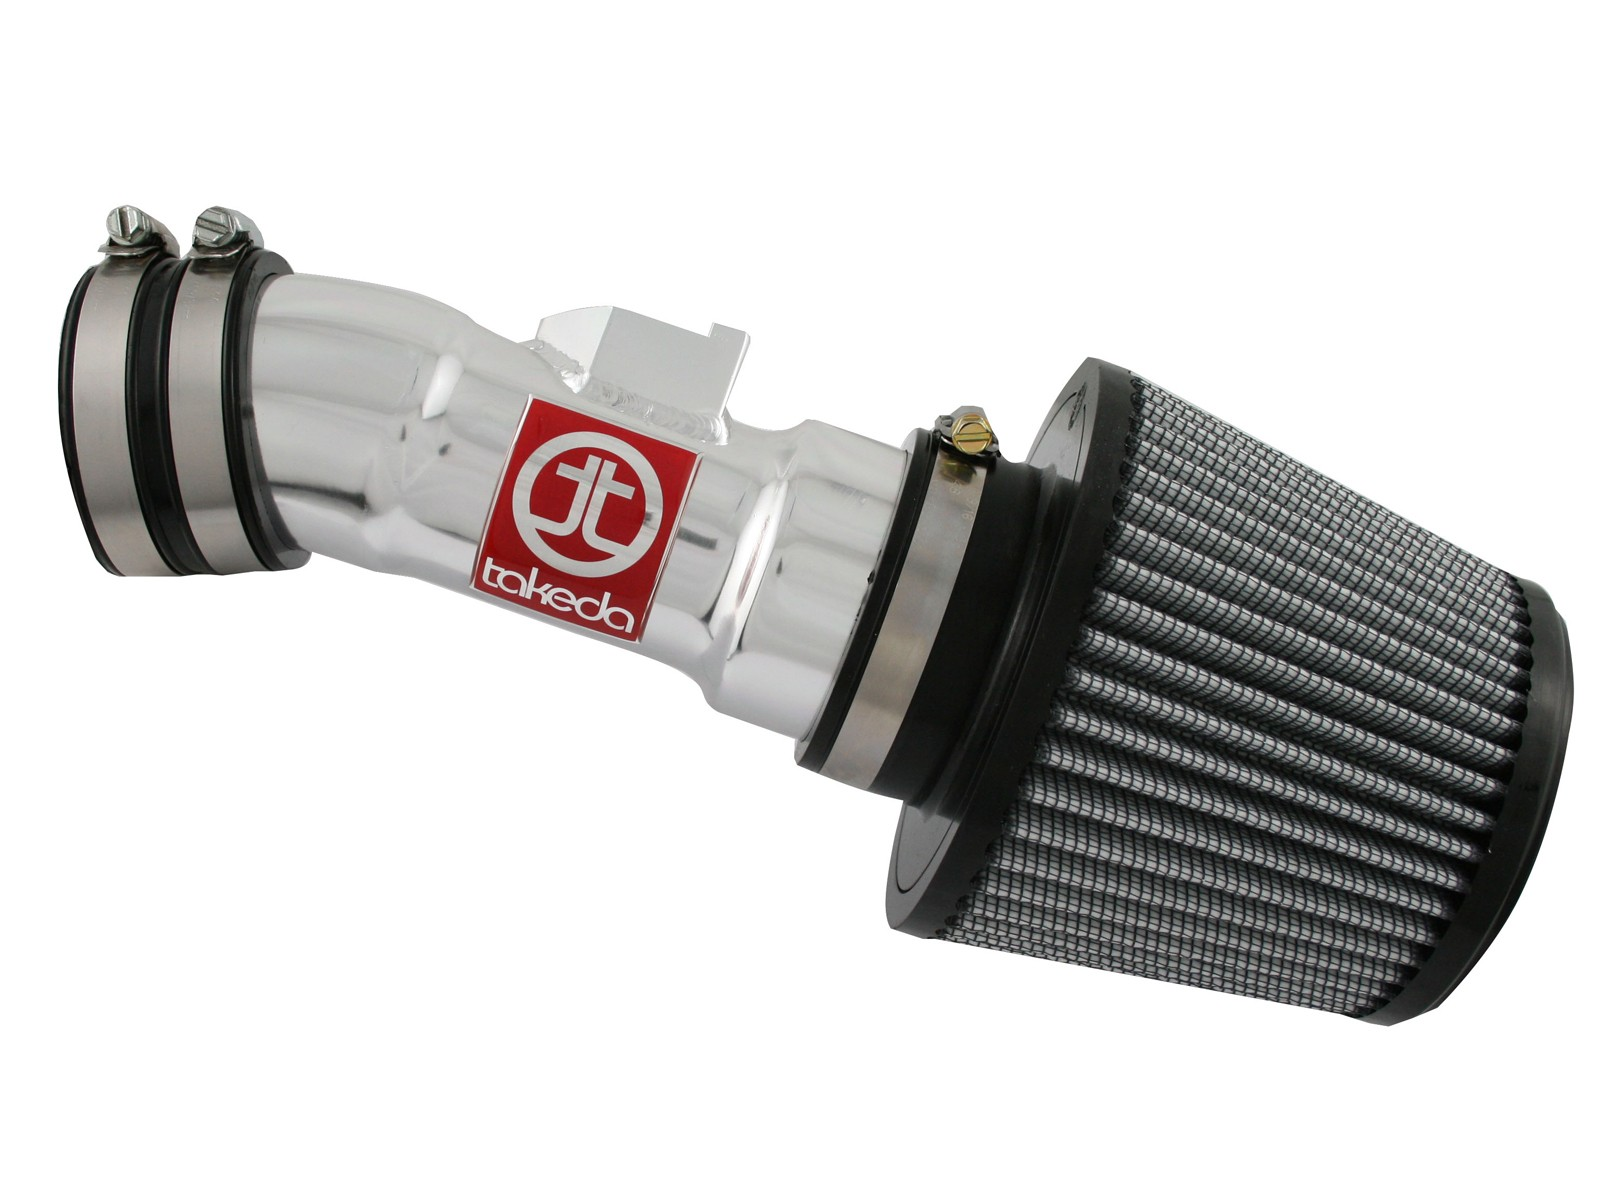 aFe POWER TR-4101P Takeda Stage-2 Pro DRY S Cold Air Intake System